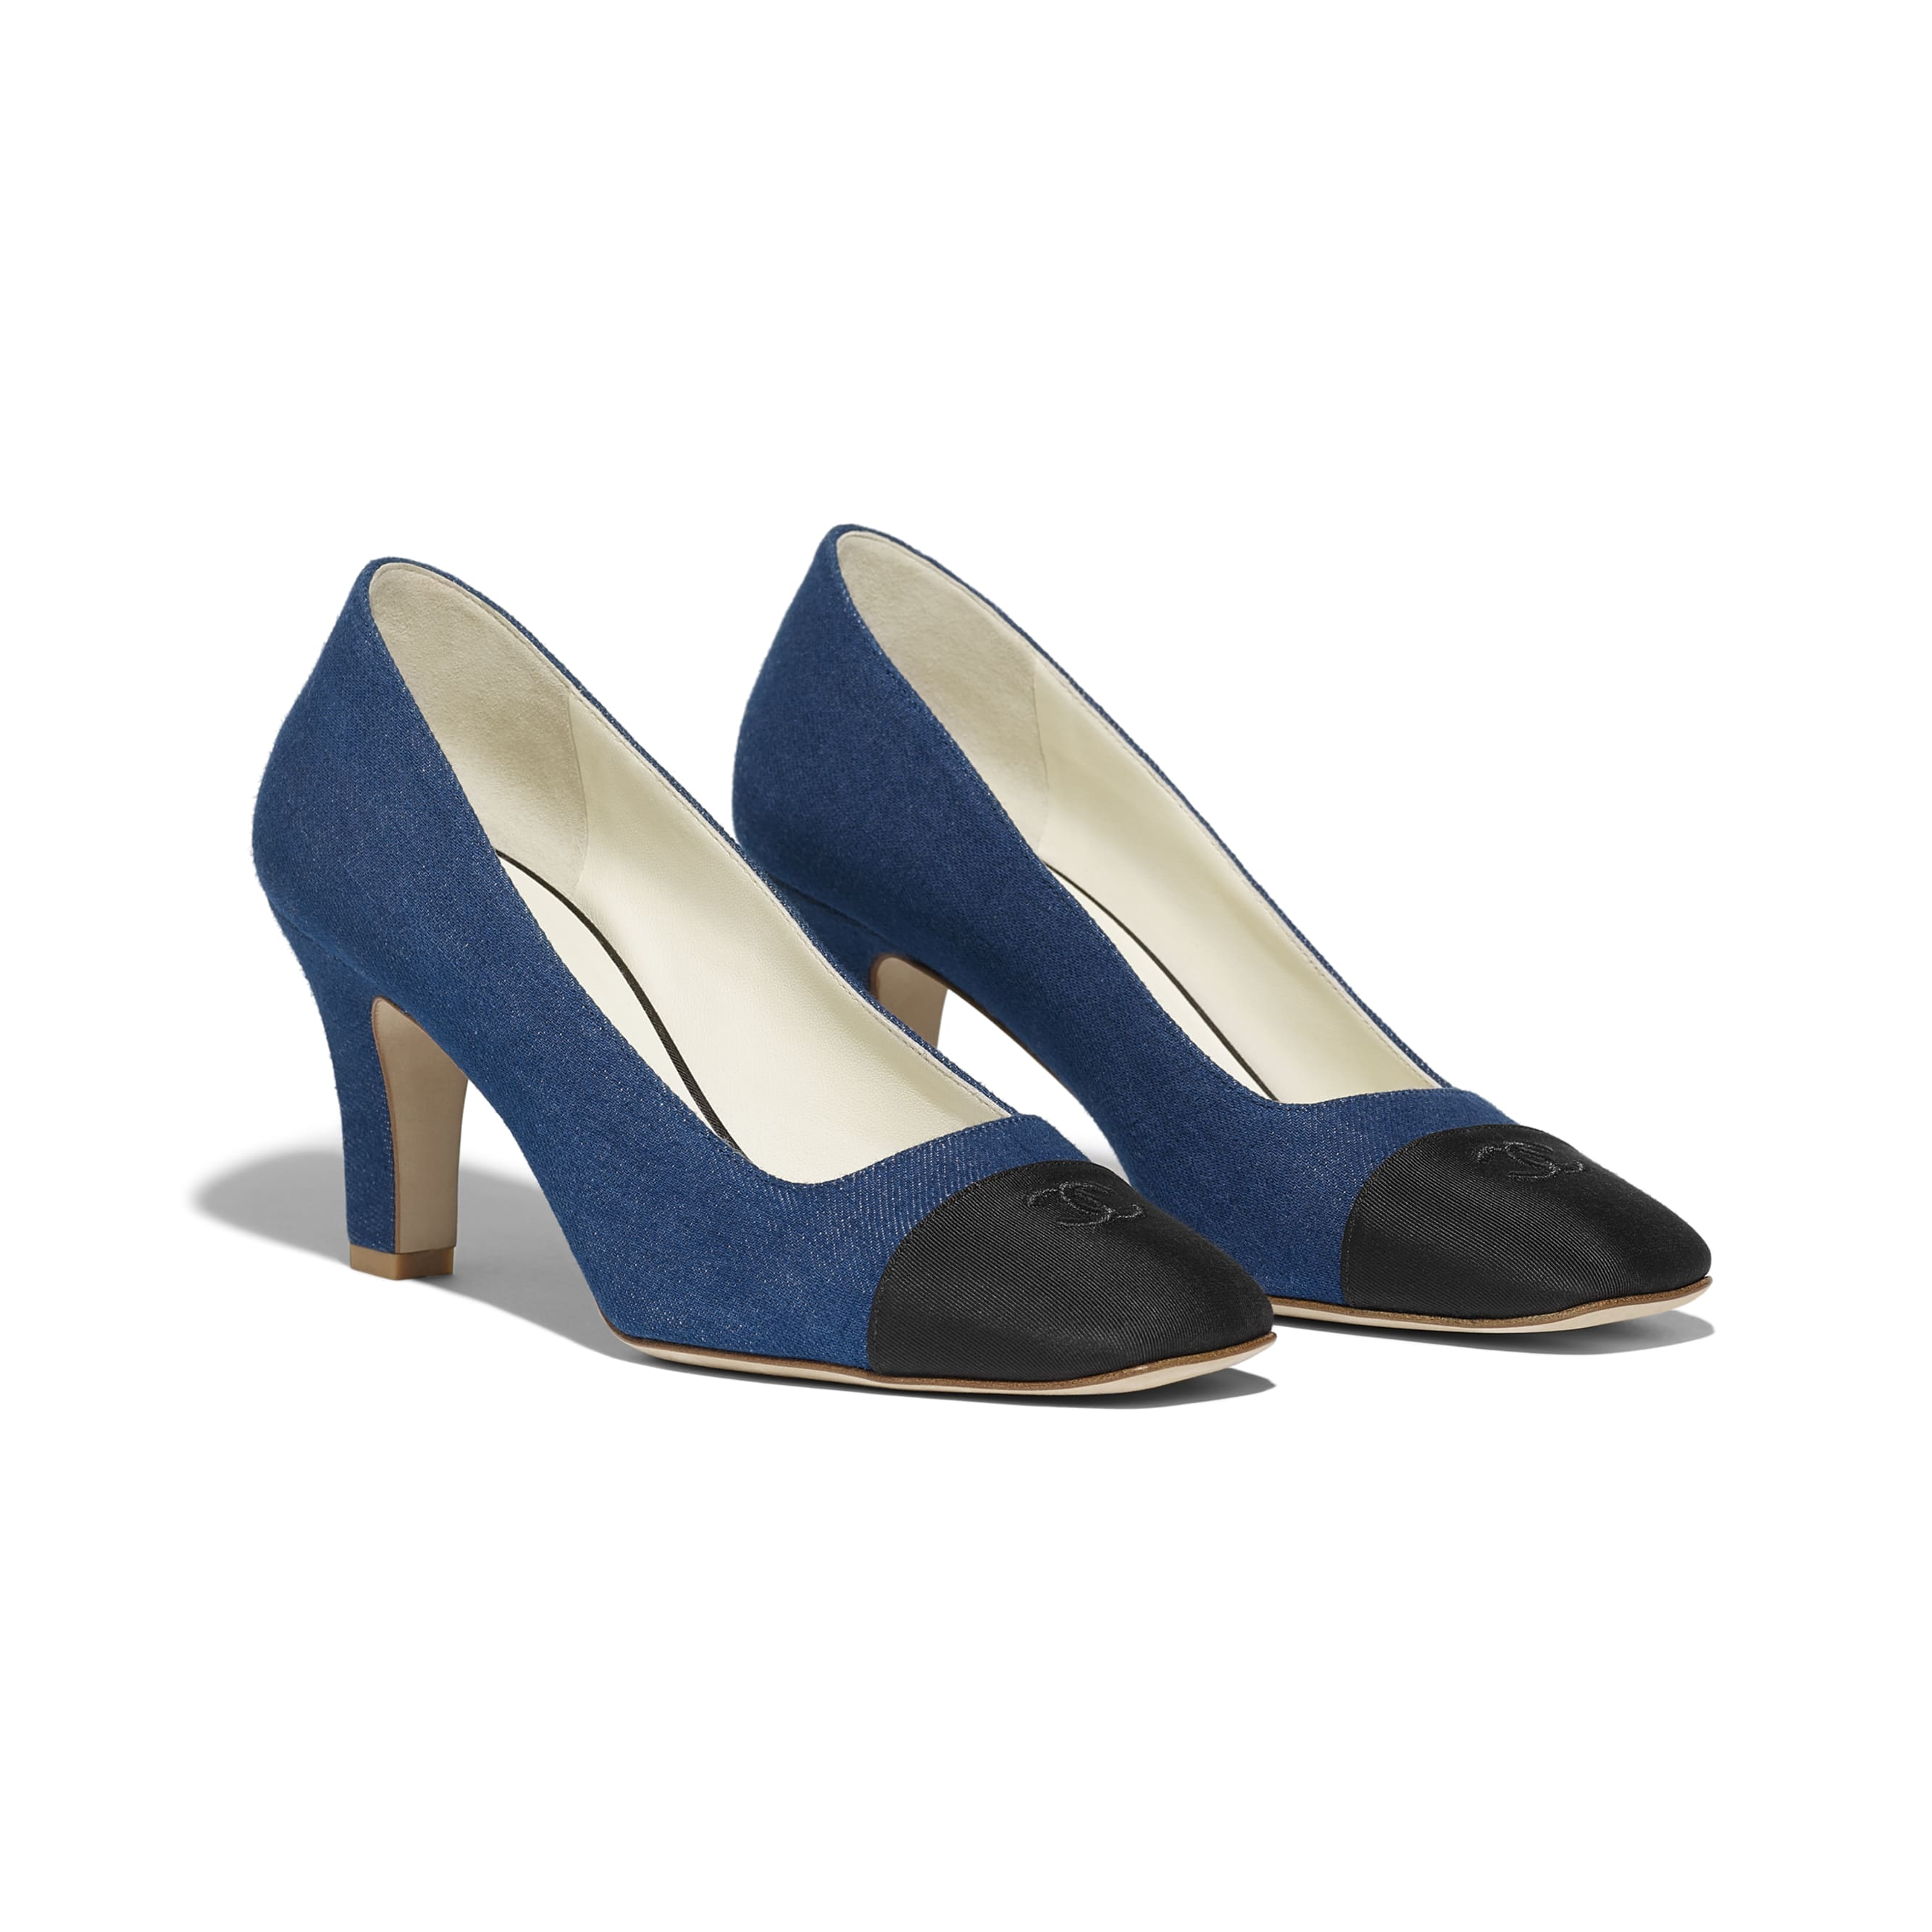 Pumps - Blue & Black - Fabric & Grosgrain - Alternative view - see standard sized version